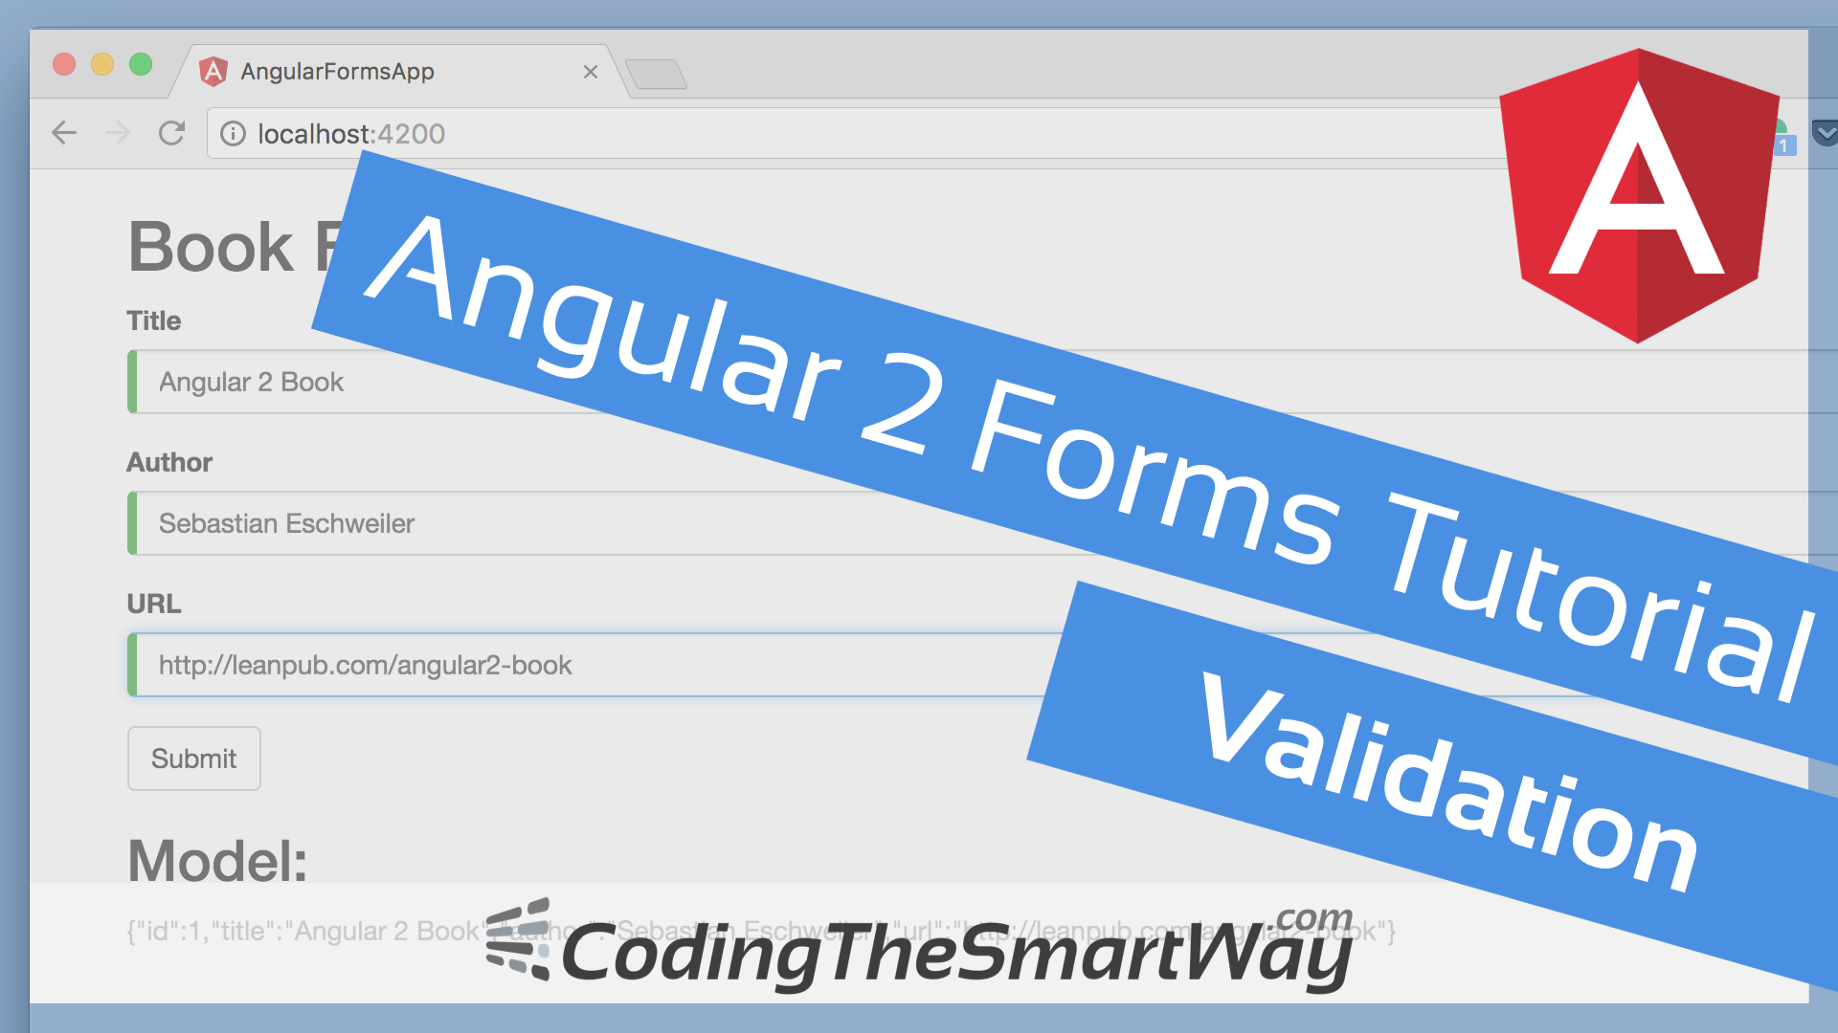 Angular 2 Forms Tutorial - Validation - CodingTheSmartWay com Blog